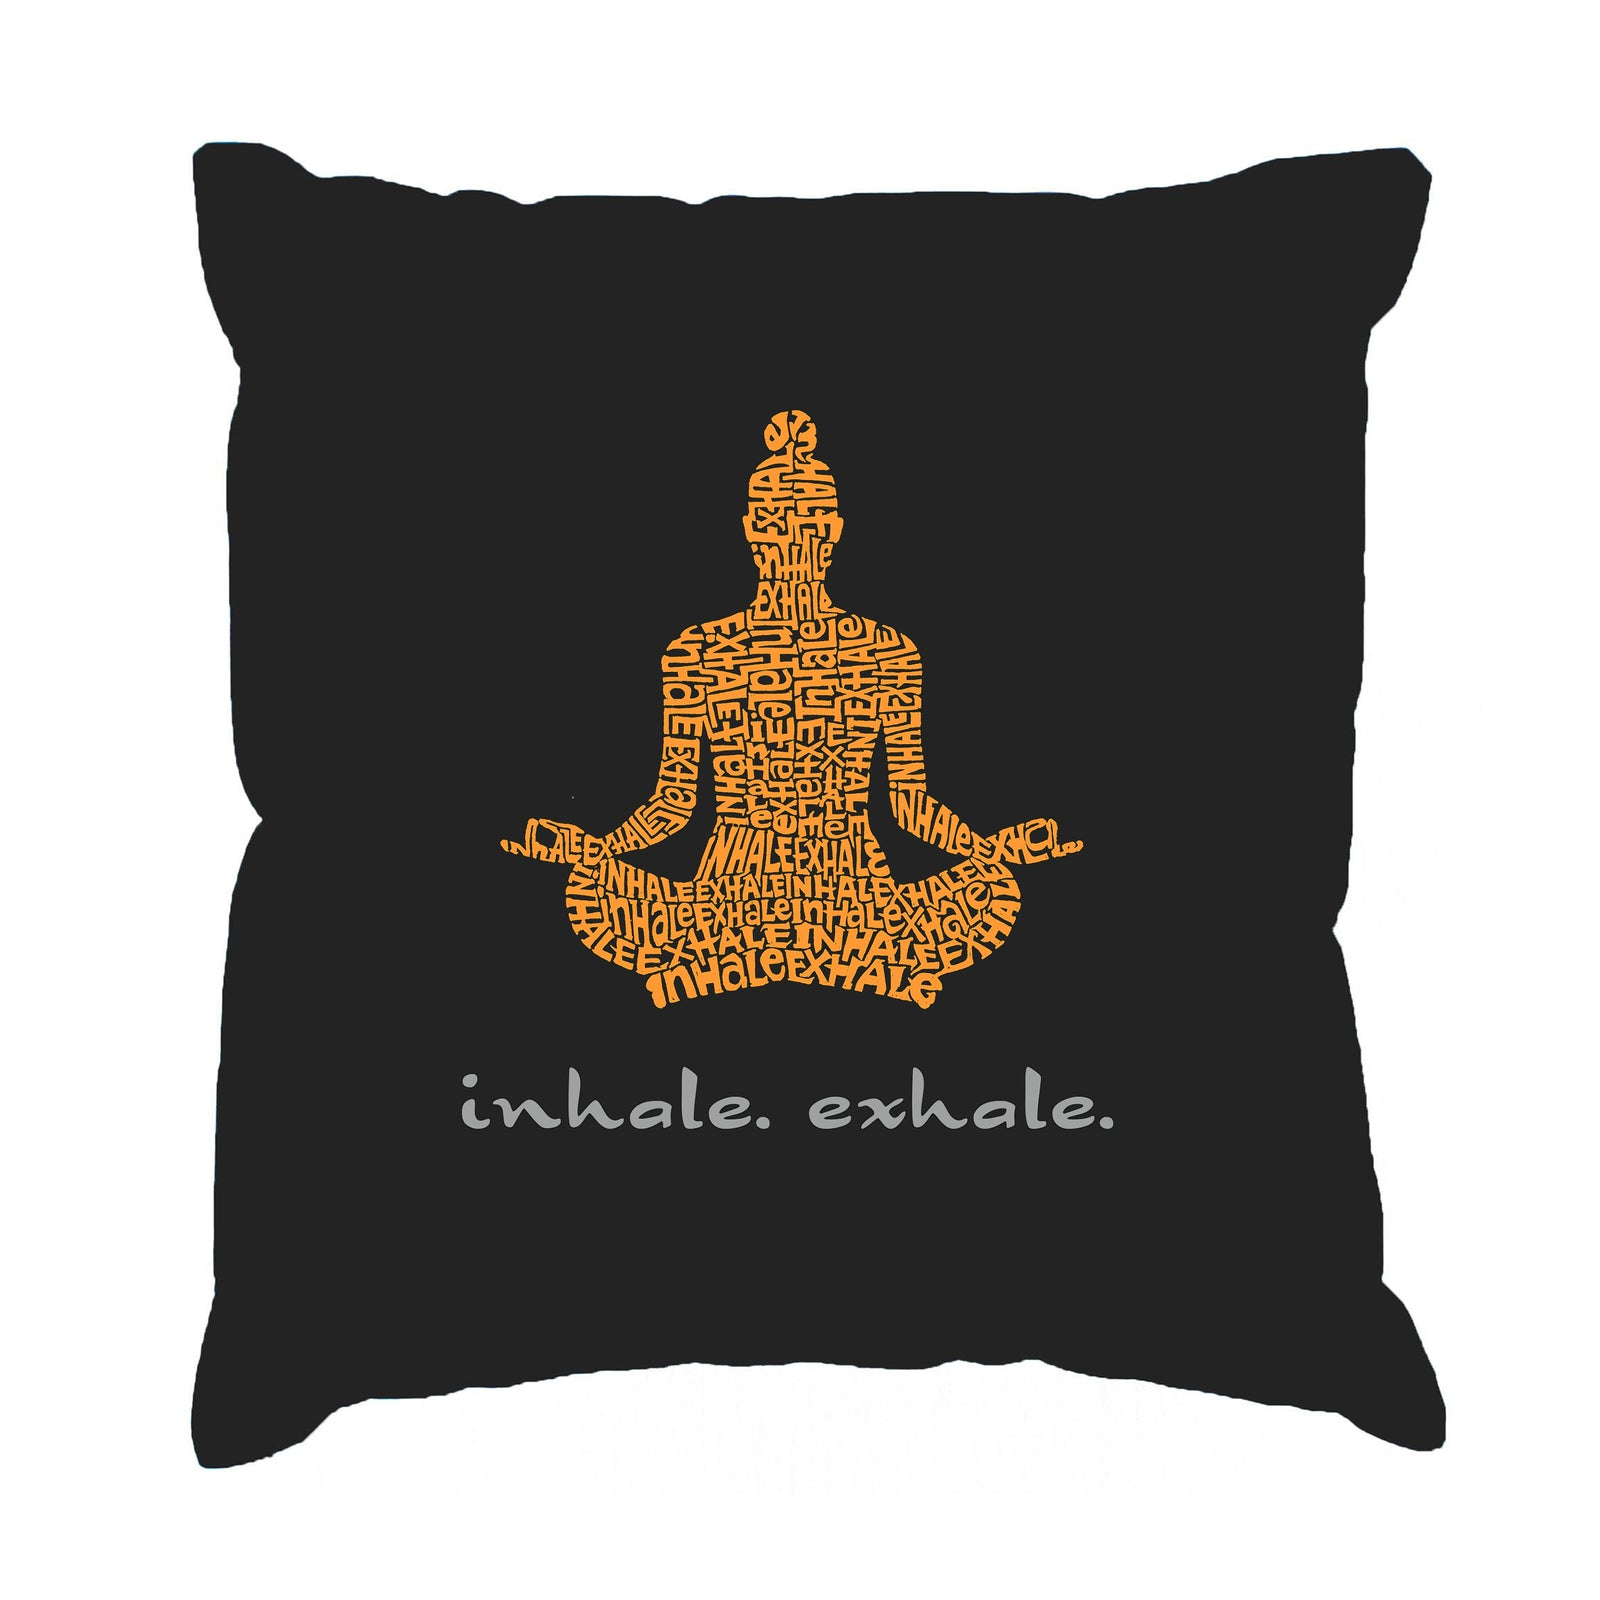 Throw Pillow Cover - Word Art - Inhale Exhale